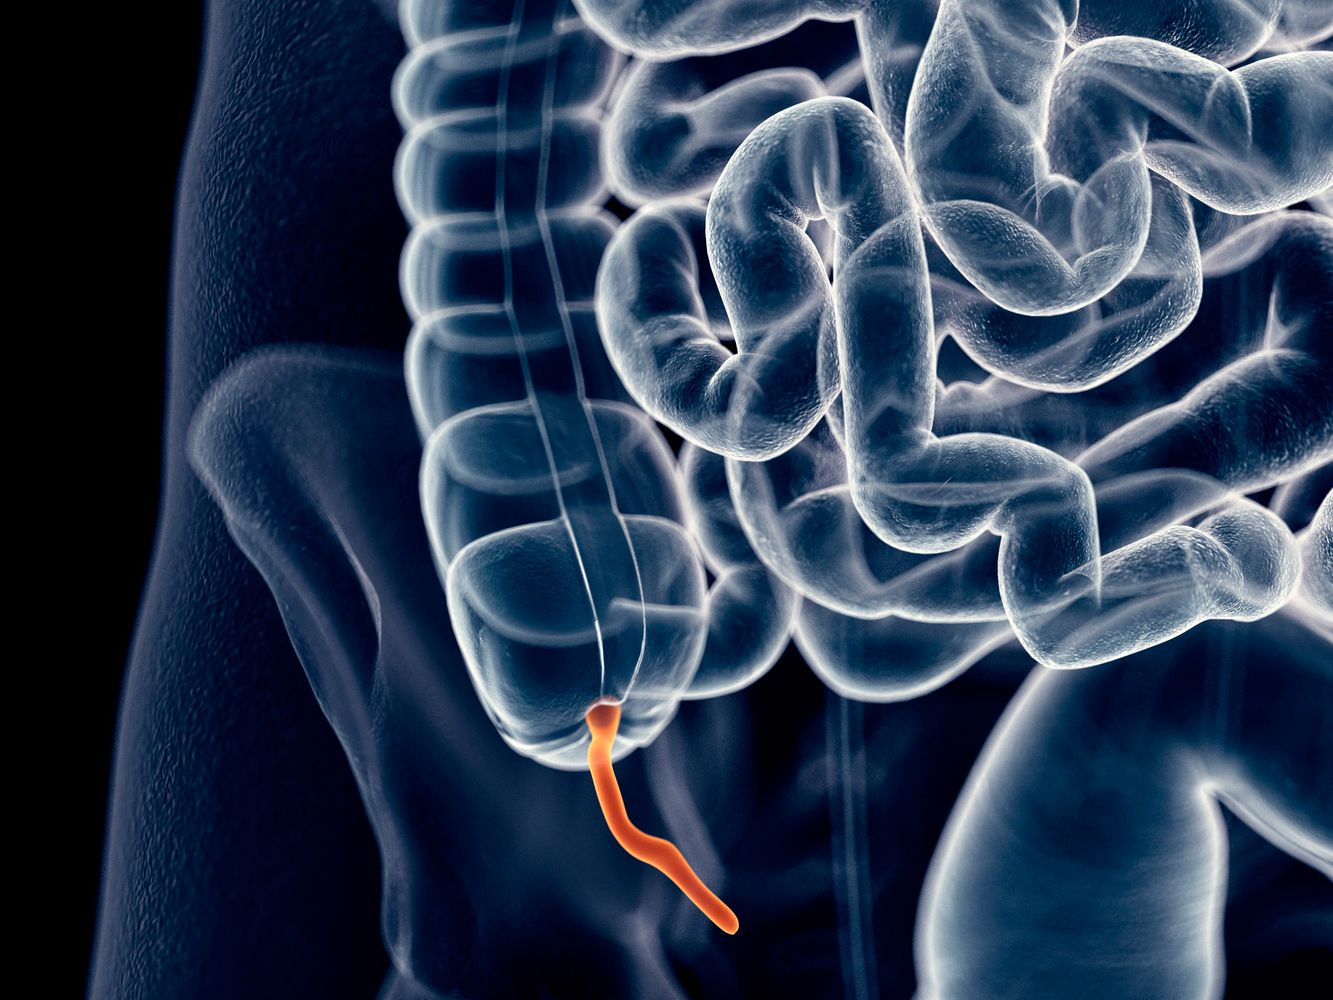 Appendix Pain: Causes, Treatment, and When to See a Doctor